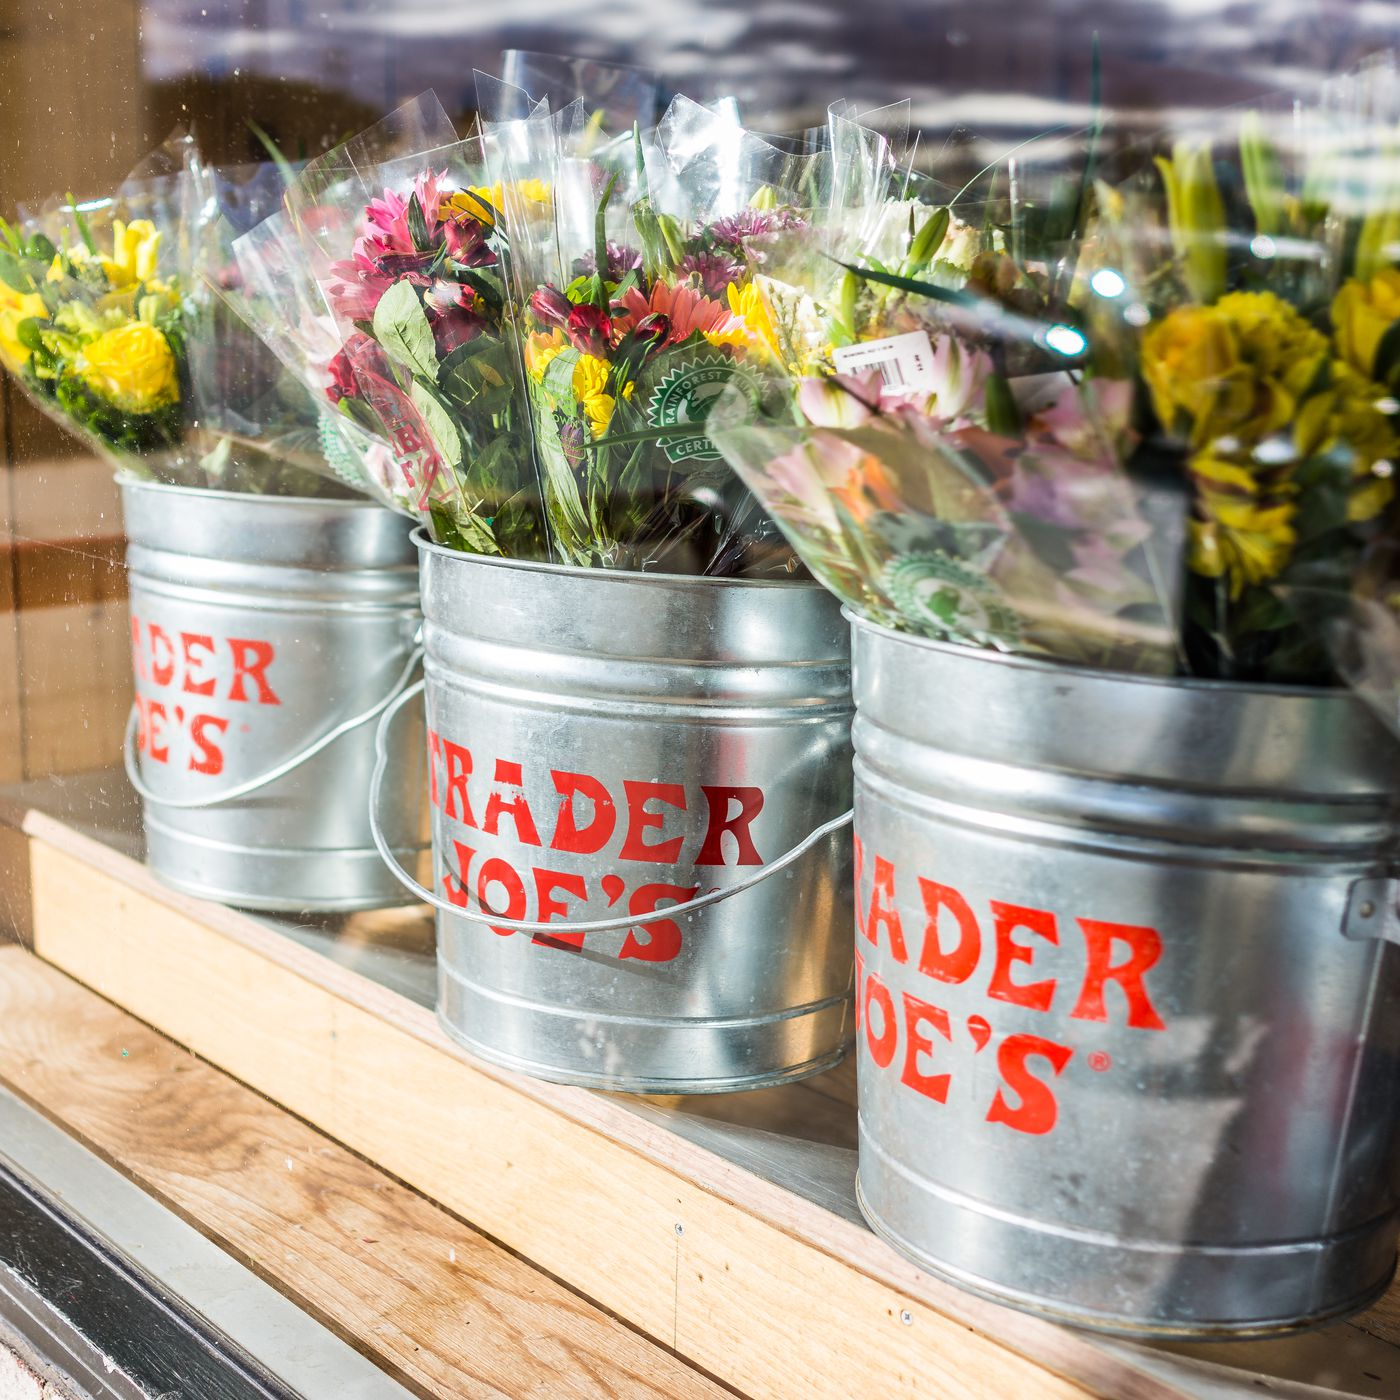 Trader Joe's to open new location in the East Village